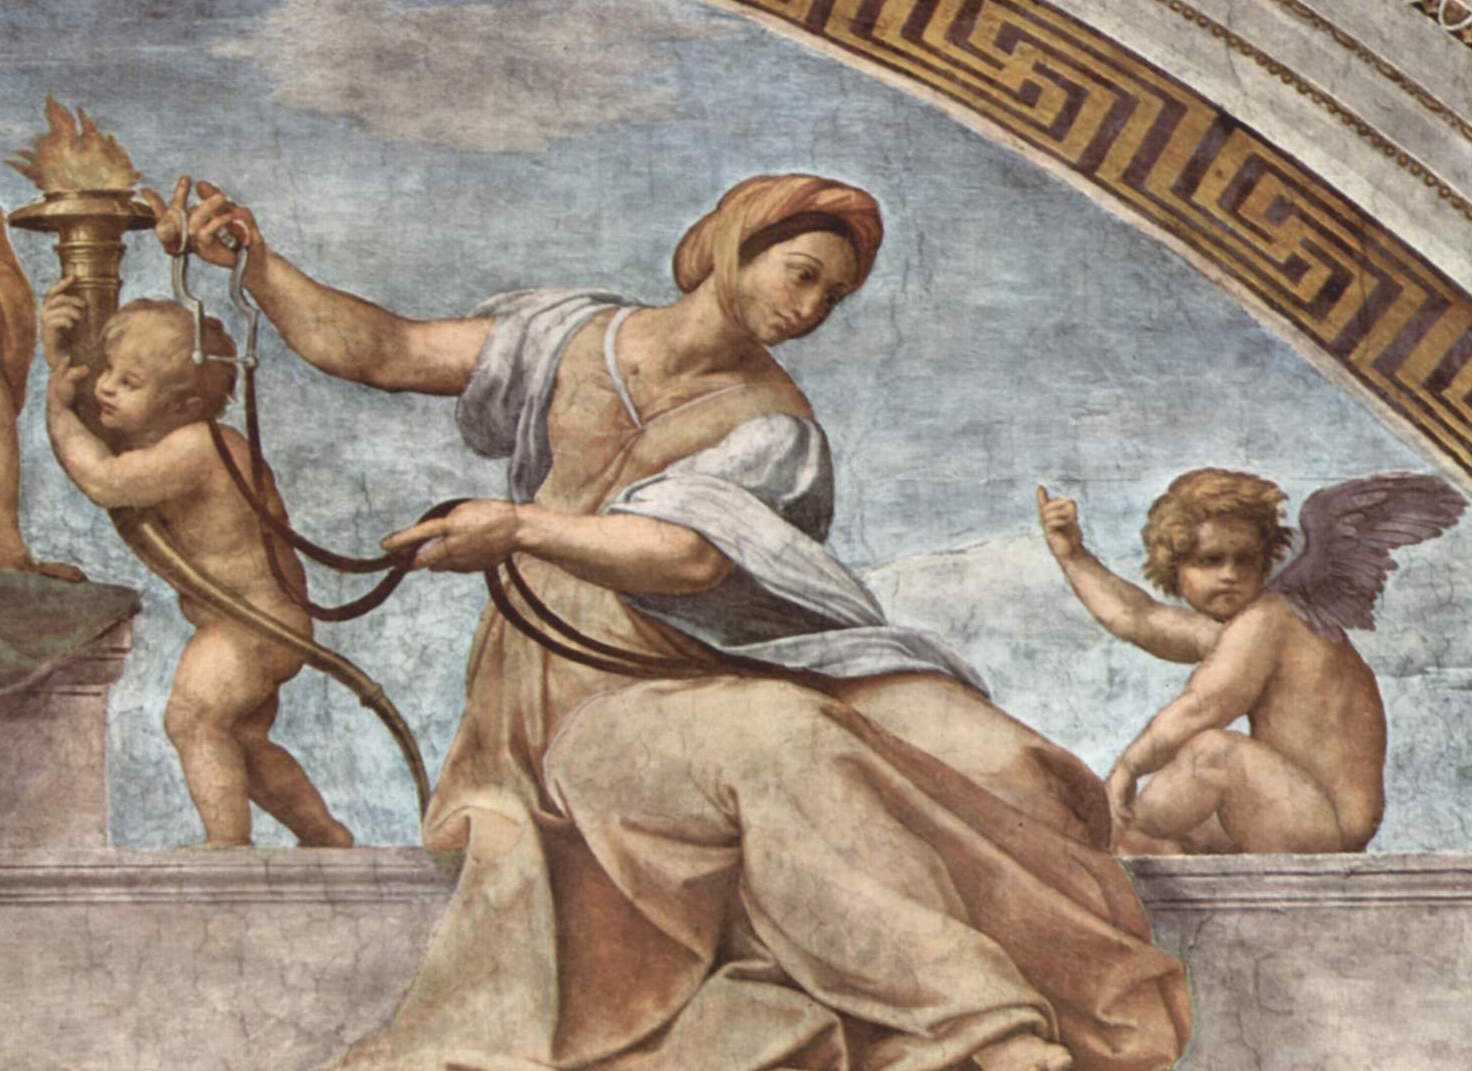 Raffaello Sanzio, Allegory of Temperance (detail from Cardinal and Theological Virtues), fresco, 1511, Stanze della Segnatura, Palazzi Vaticani